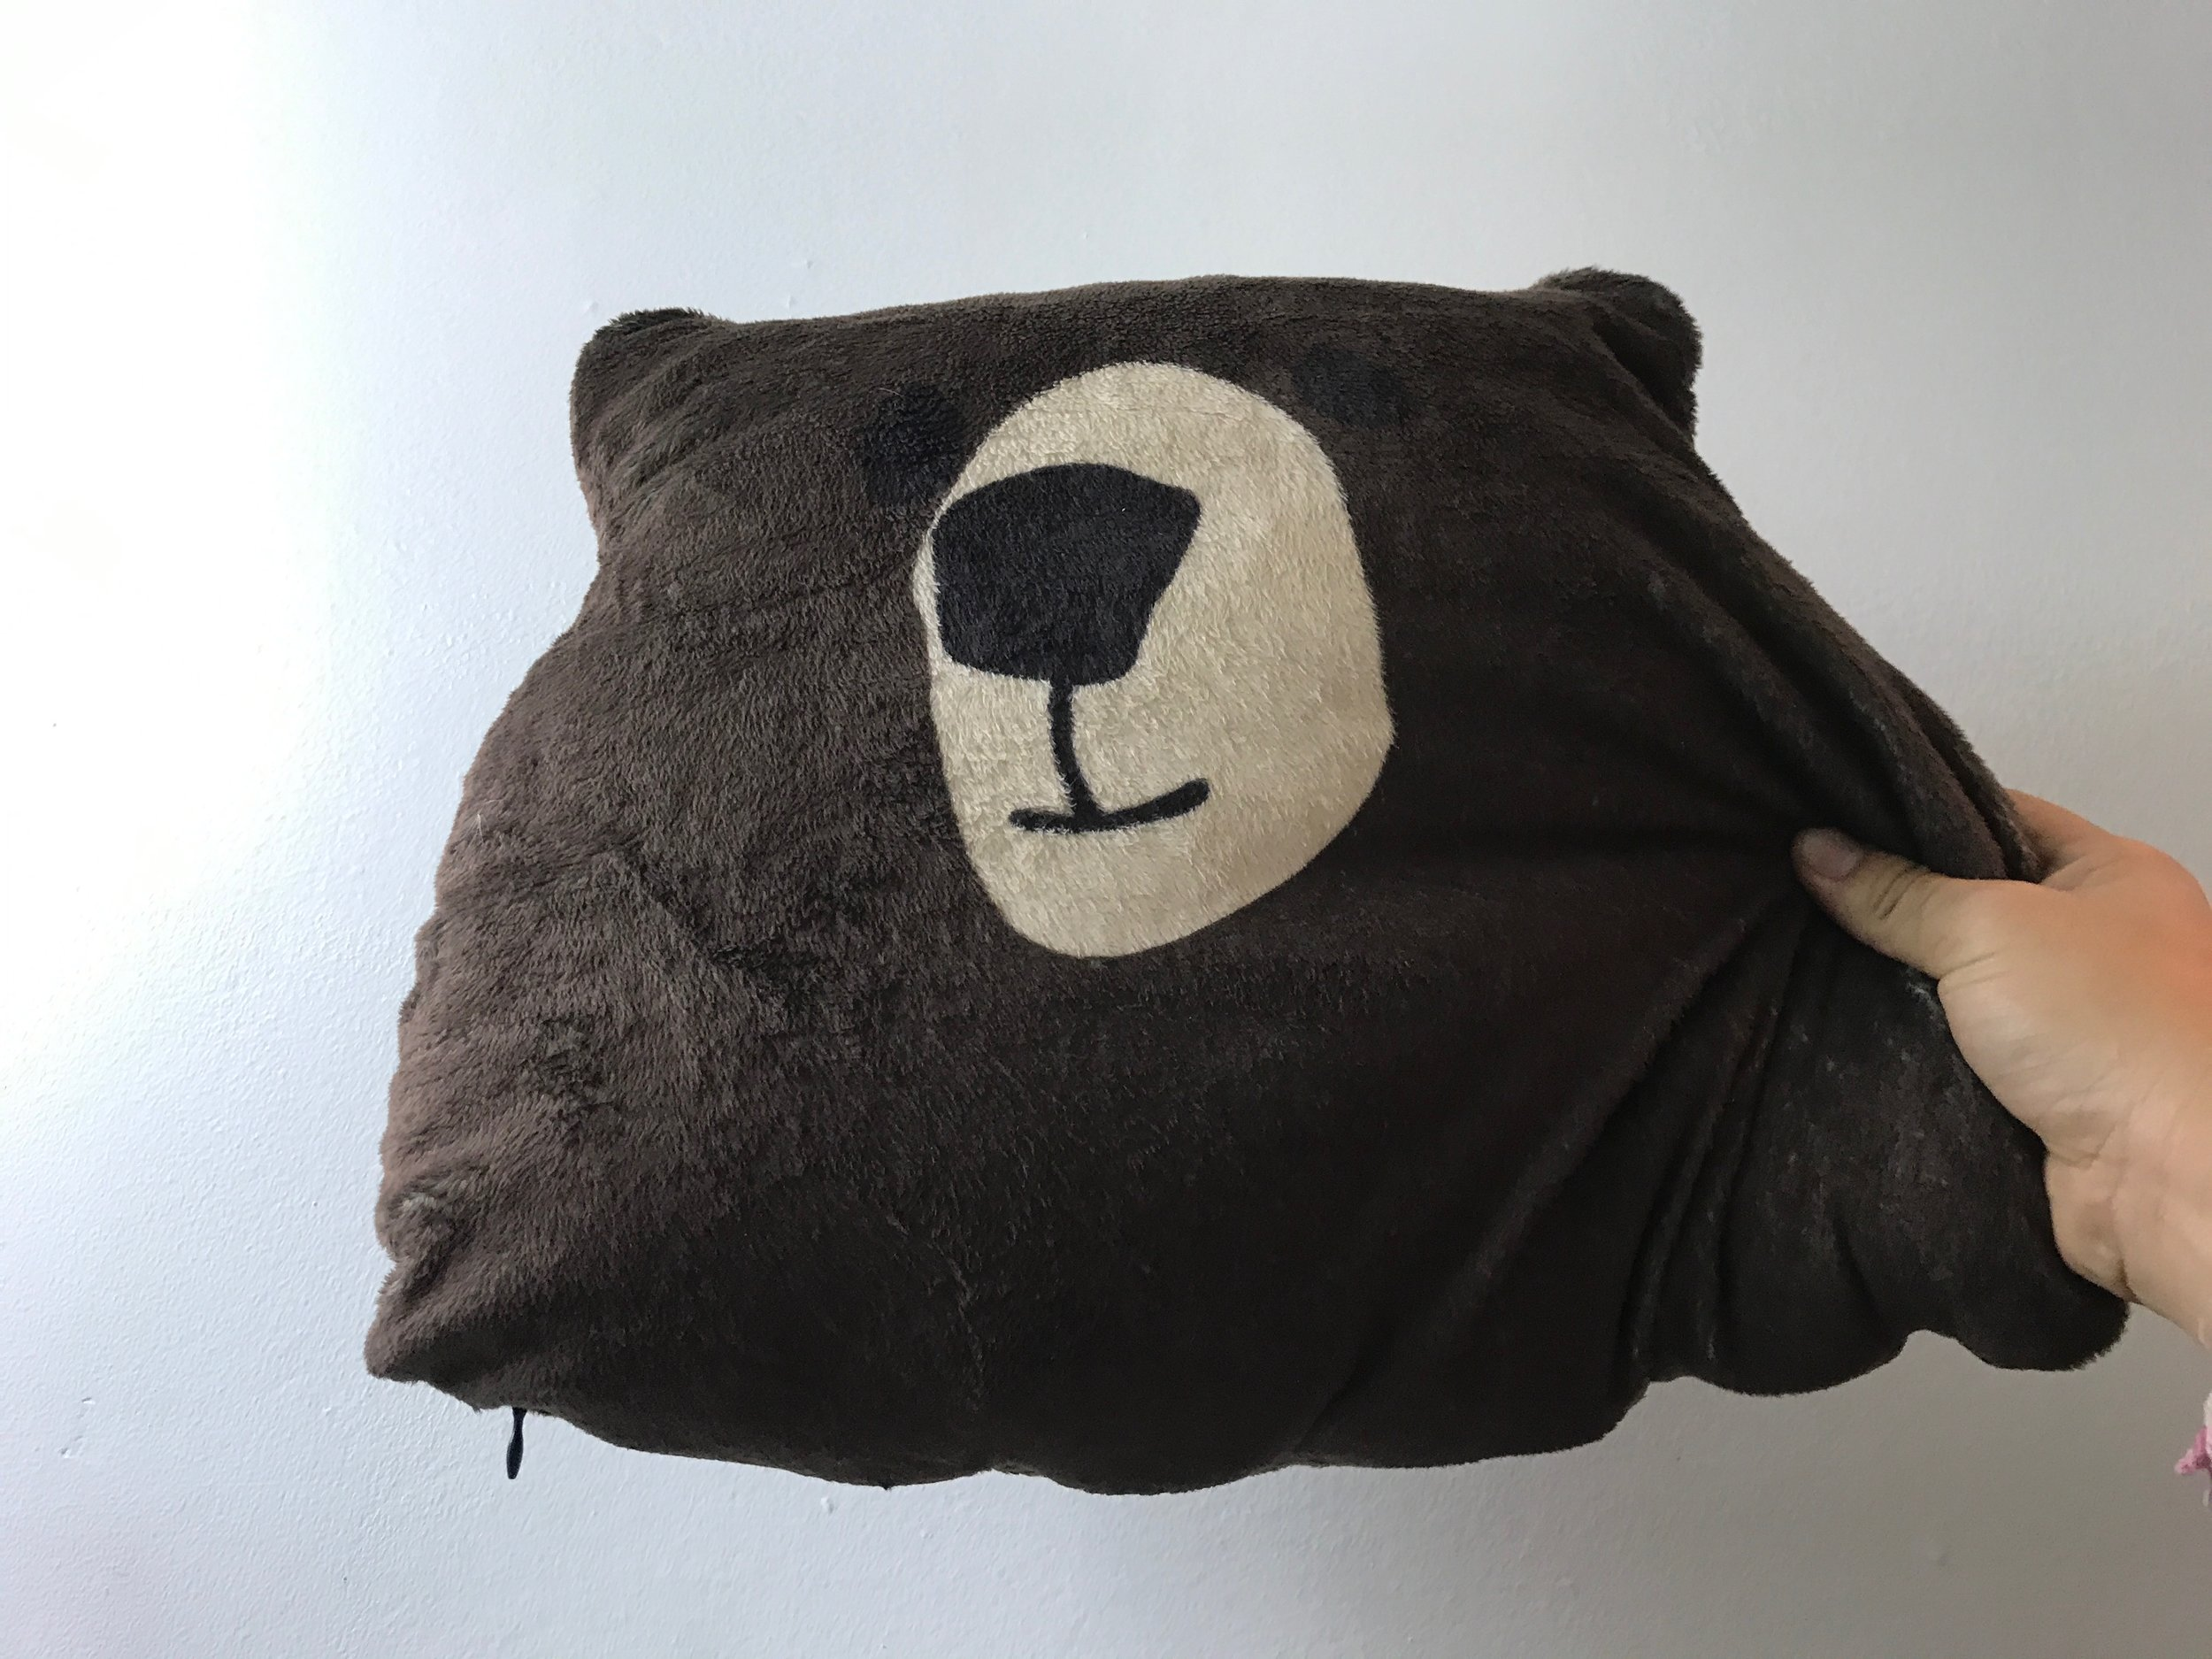 This is the bear pillow I always travel with (it definitely stands out so I no longer leave the pillow on planes!). If you're good at leaving things on planes, get a bear pillow. Or use your jacket or sweater.